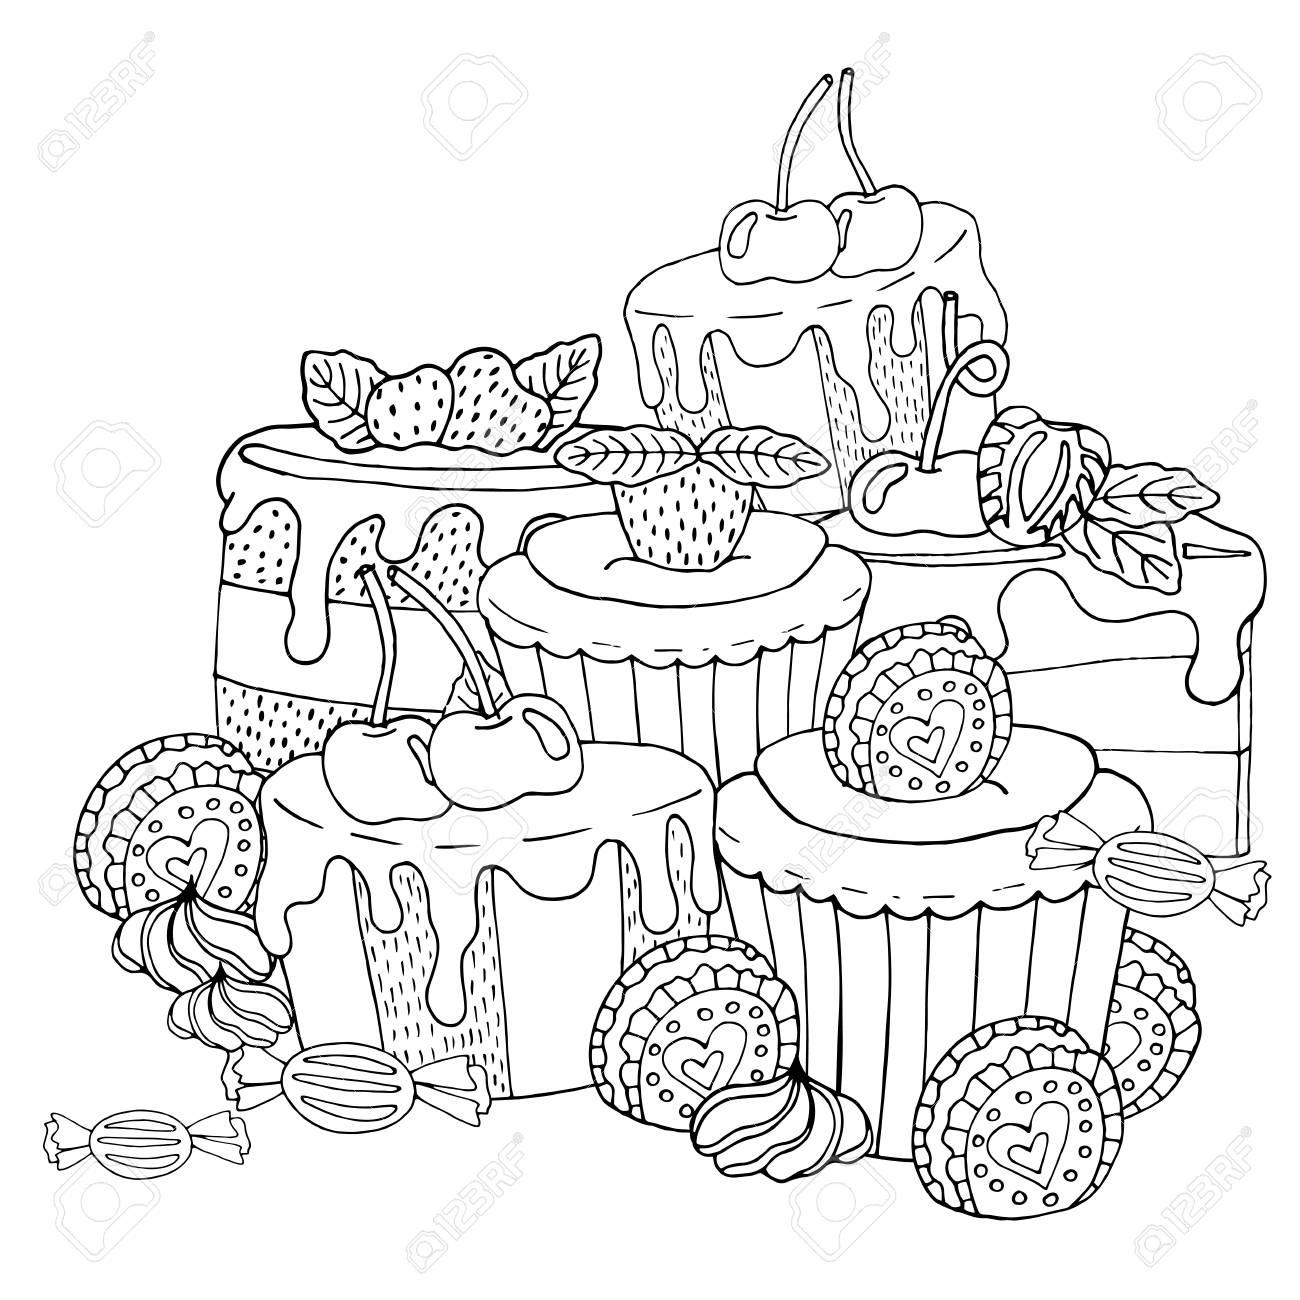 Coloring Page With Cake Cupcake Candy And Other Dessert With Royalty Free Cliparts Vectors And Stock Illustration Image 121952858